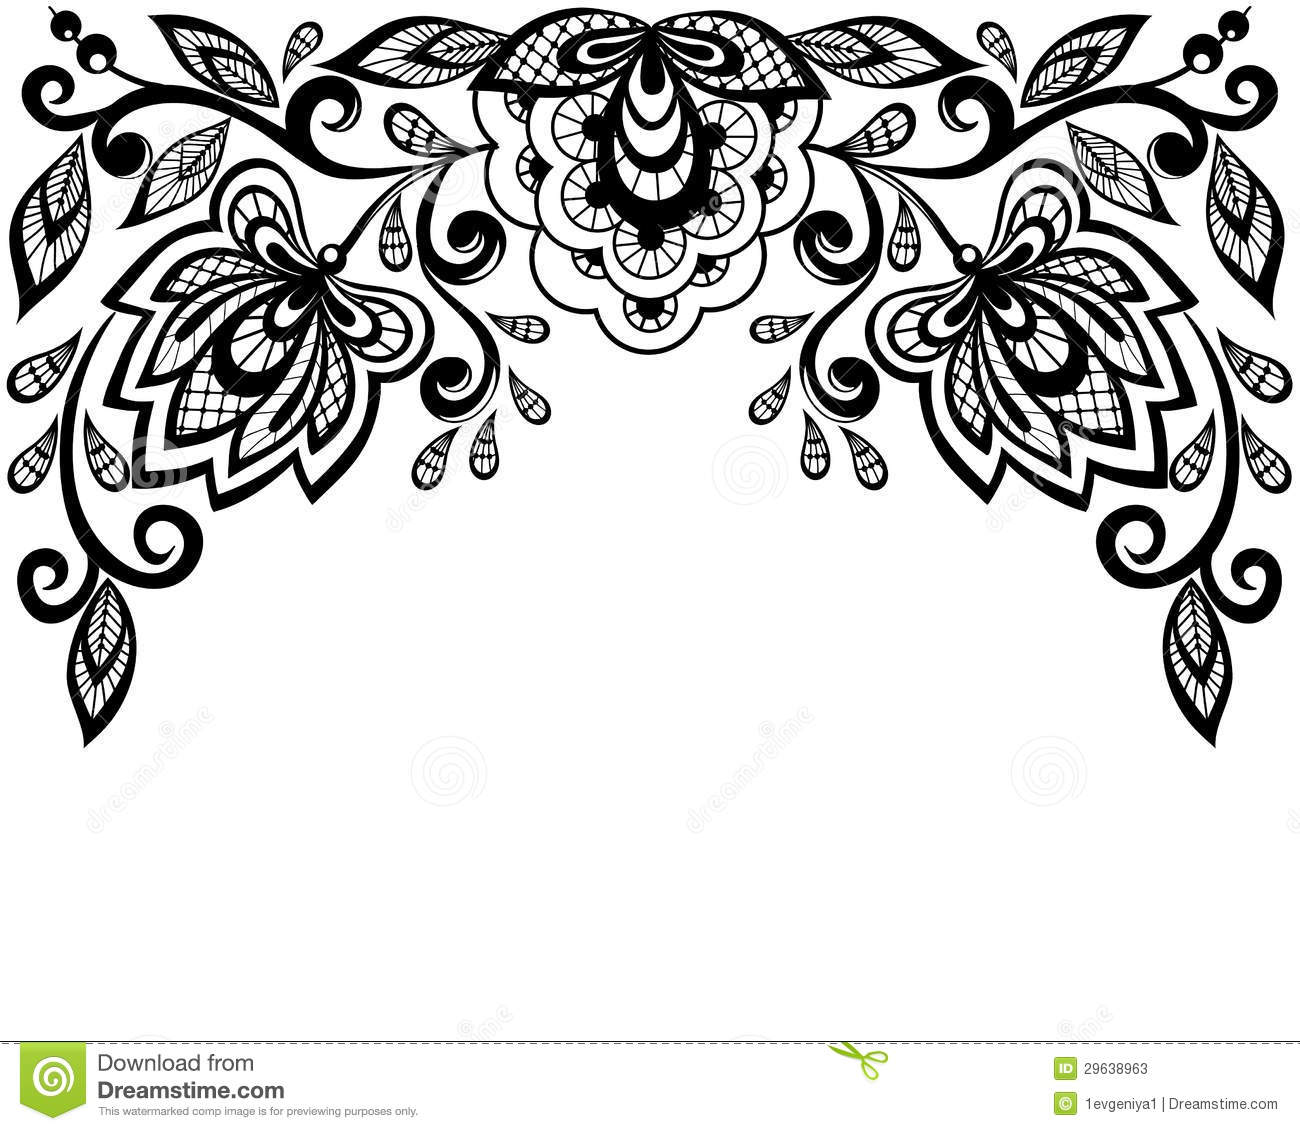 vector download Clipart lace. Free download best on